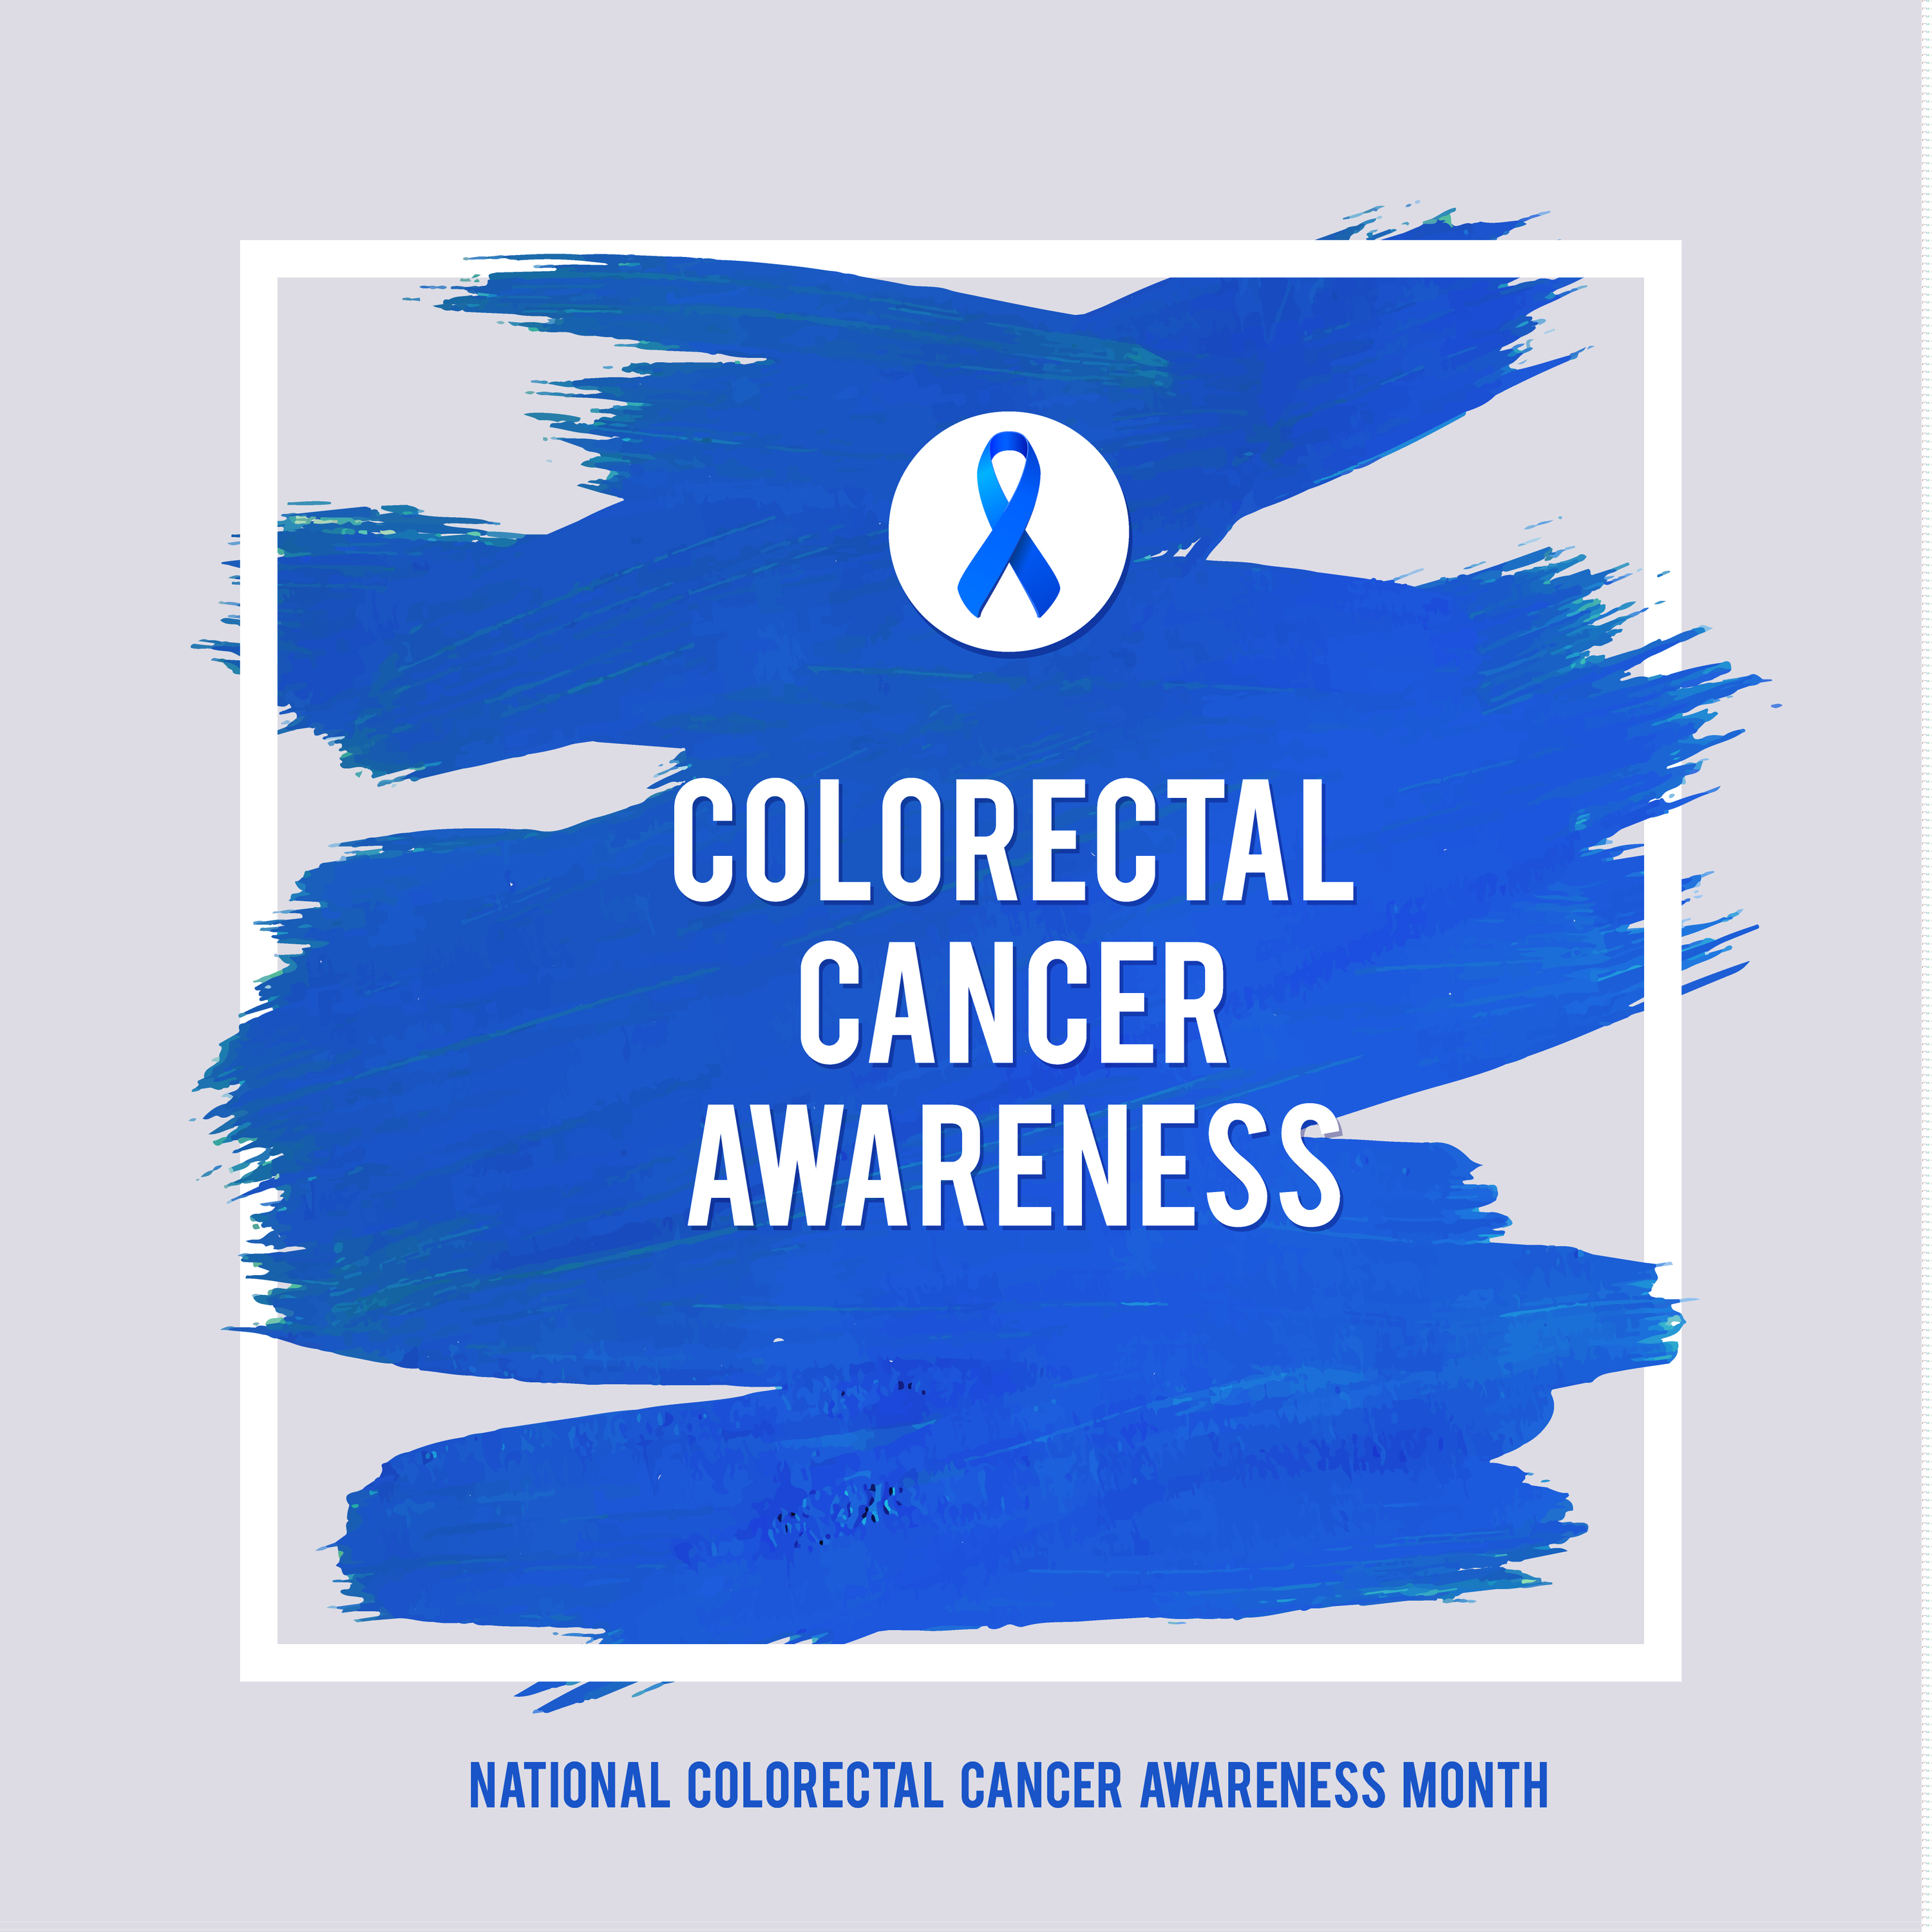 Can We Celebrate Colorectal Cancer Awareness Month